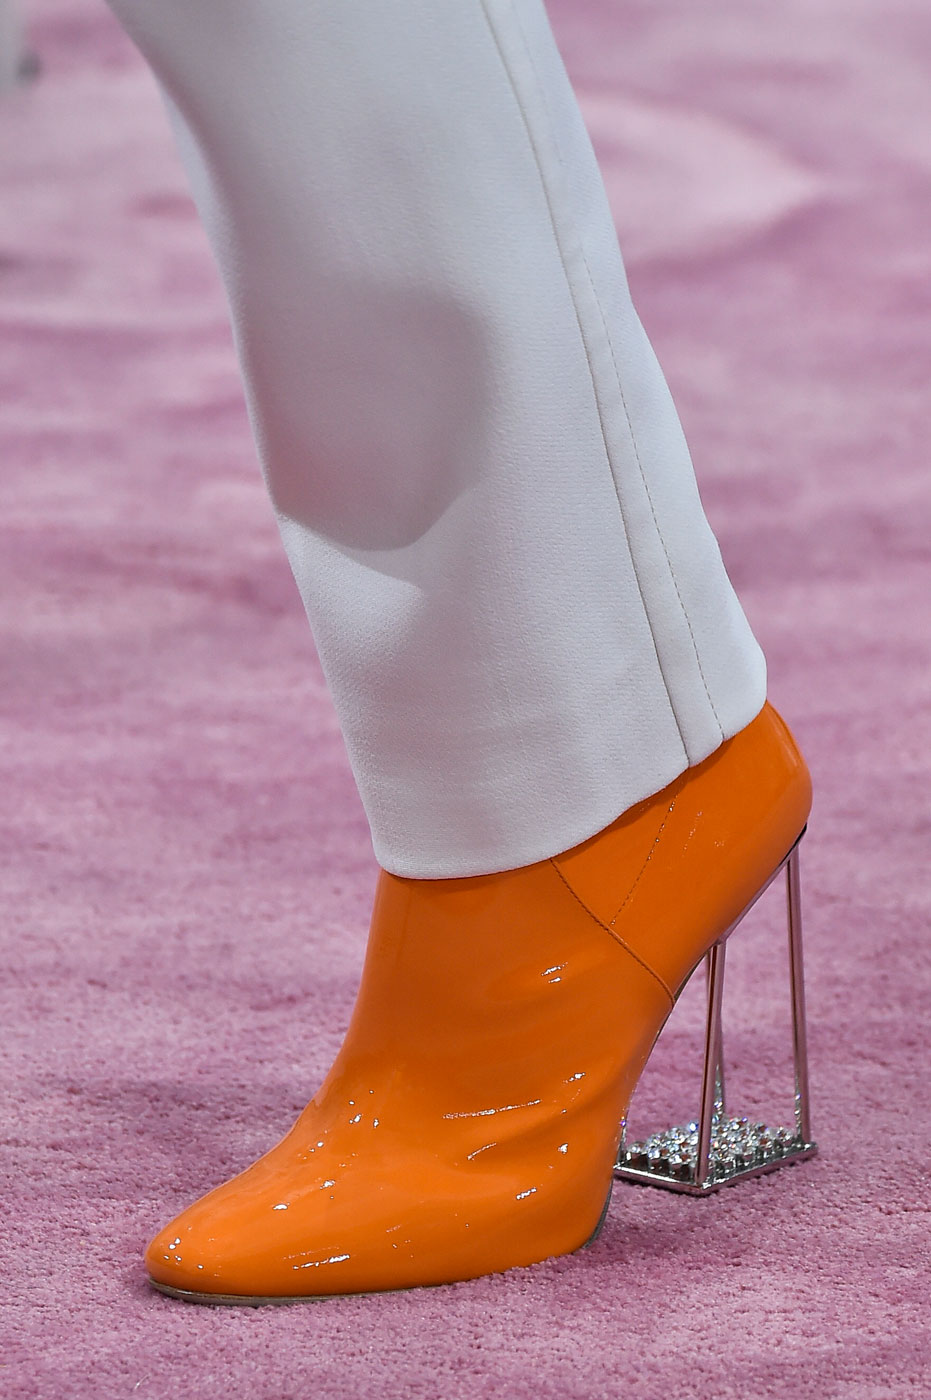 Christian-Dior-fashion-runway-show-close-ups-haute-couture-paris-spring-summer-2015-the-impression-181